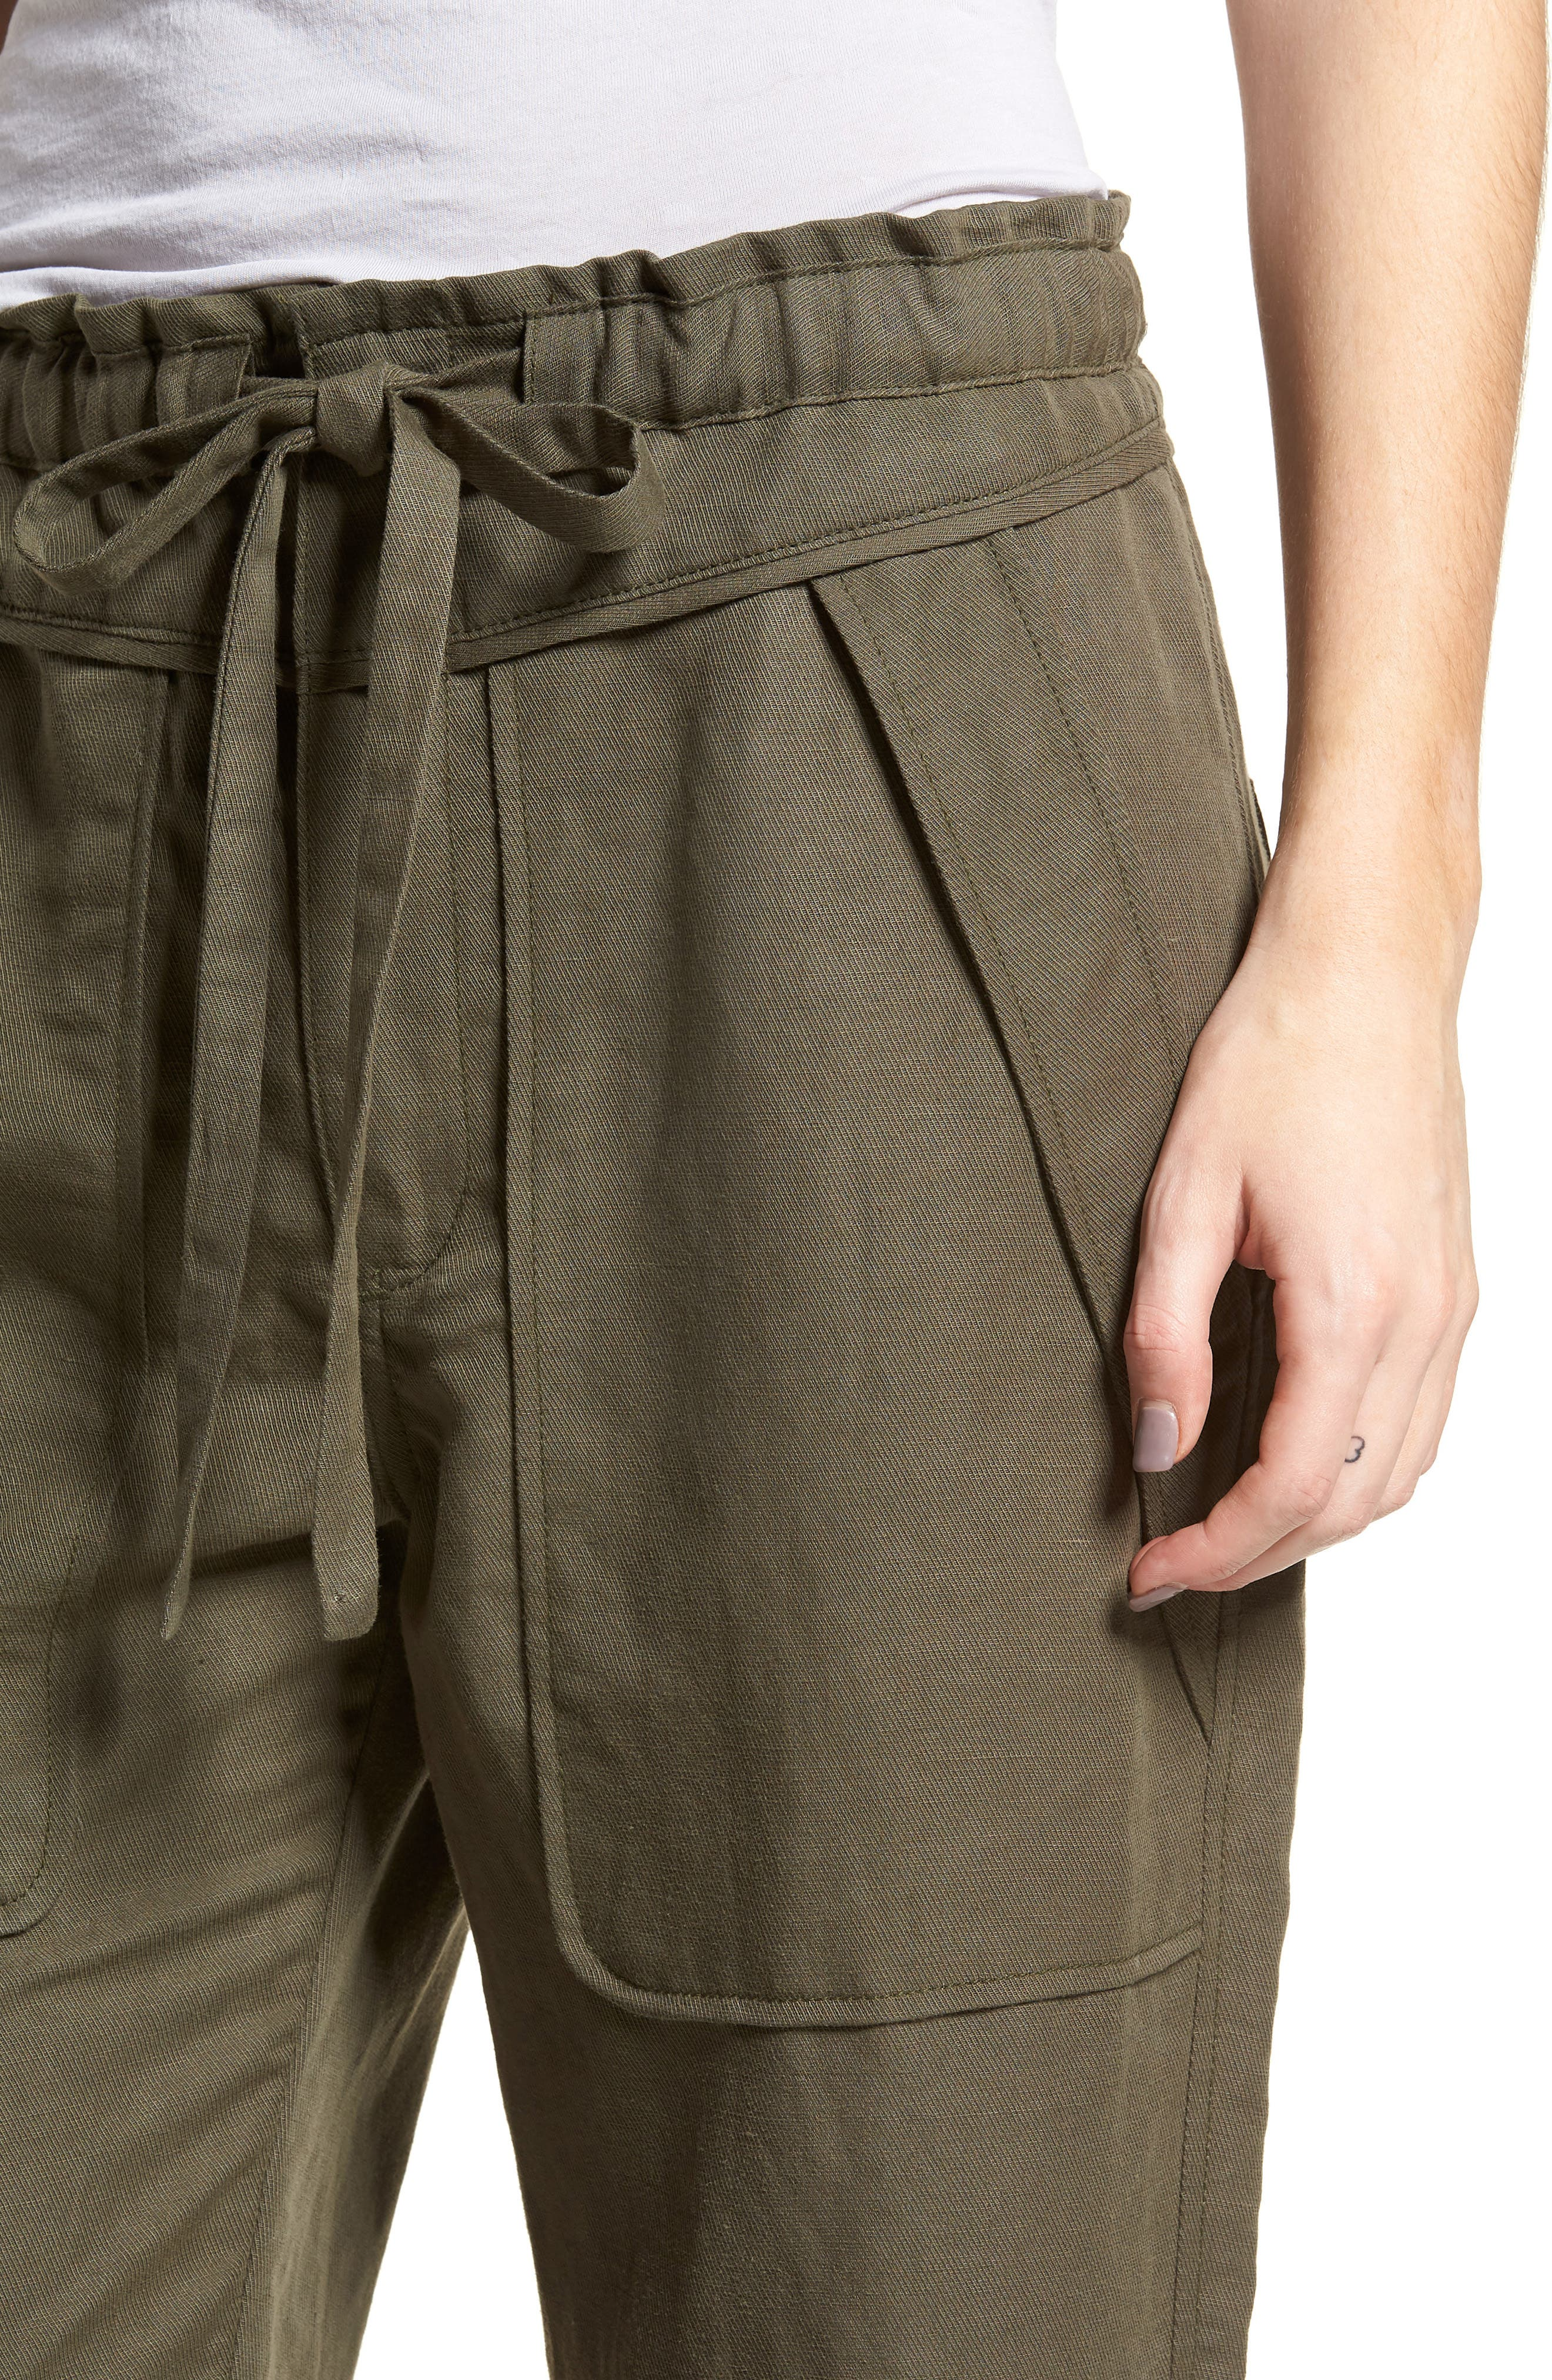 Stellina High Waist Pants,                             Alternate thumbnail 4, color,